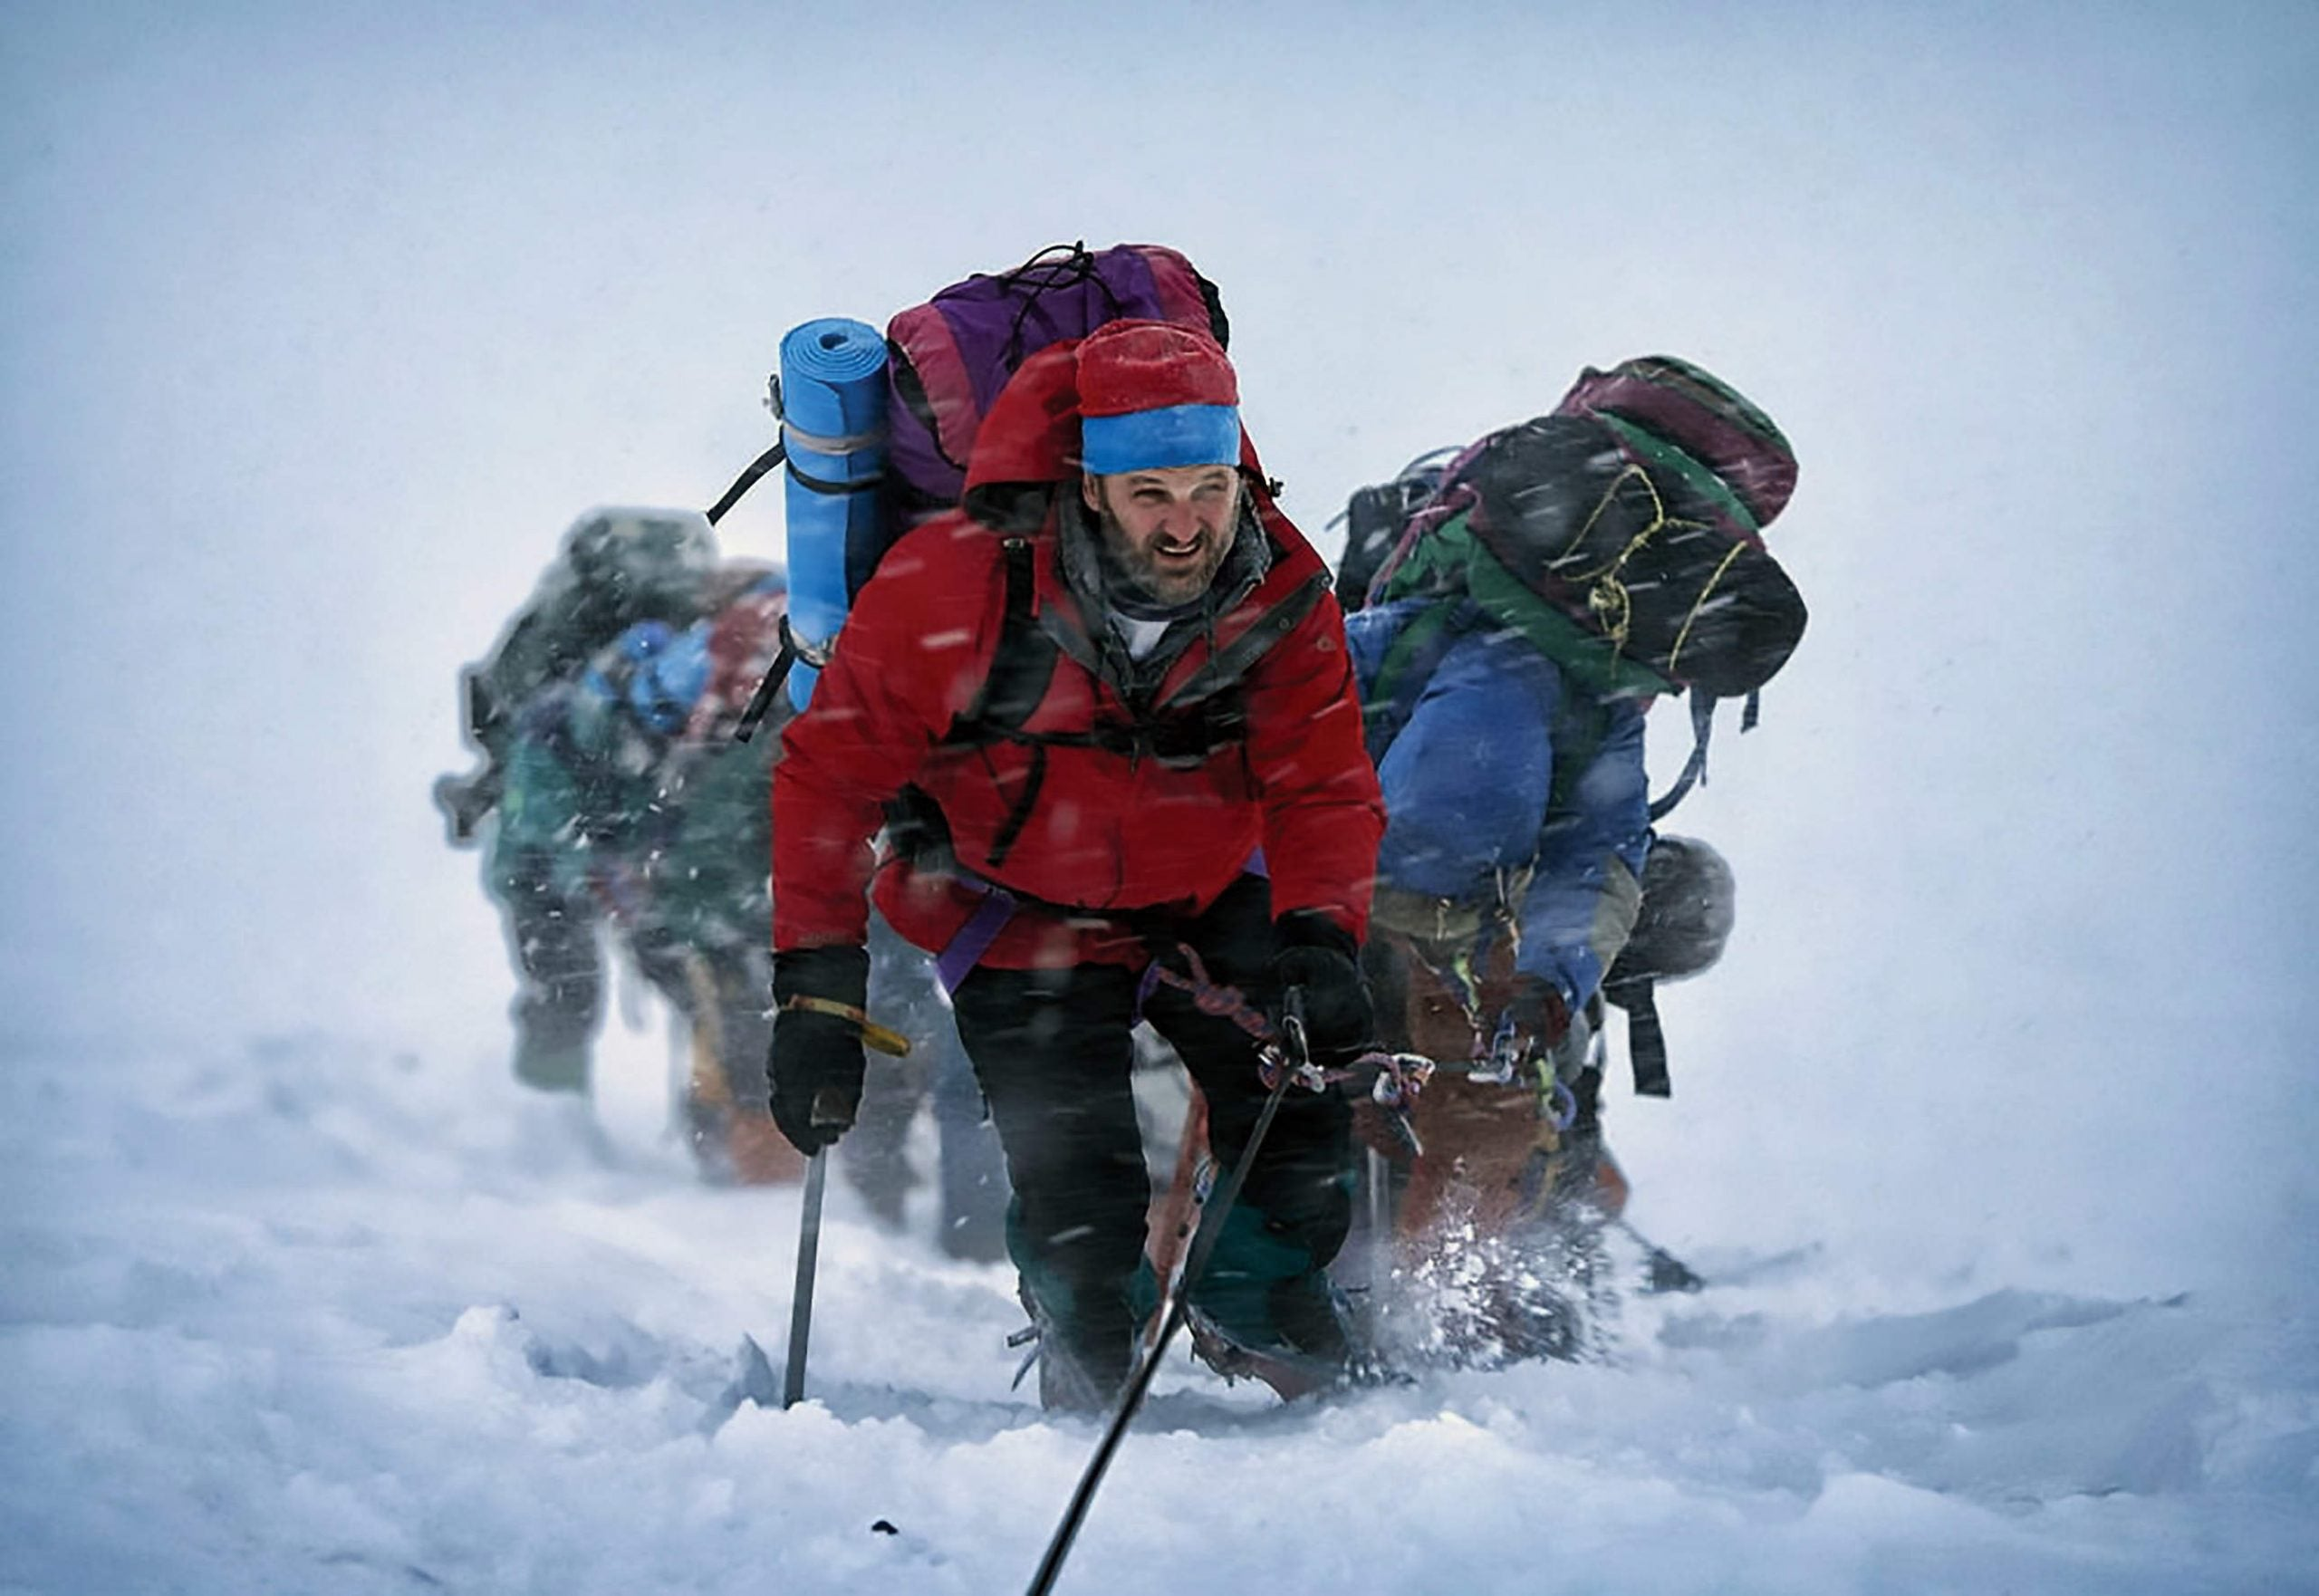 The use of 3-D in Everest feels about as vital as a grand piano up a mountain